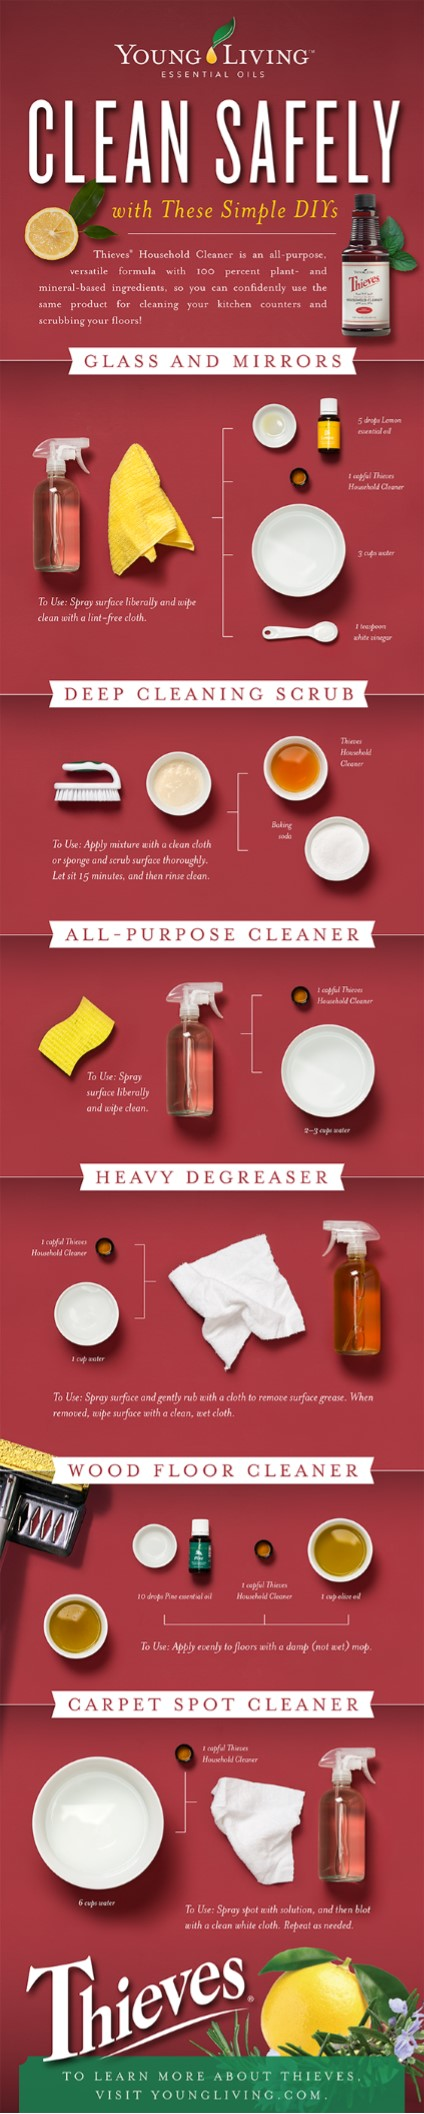 Clean Safely with Young Living - Thieves Household Cleaner